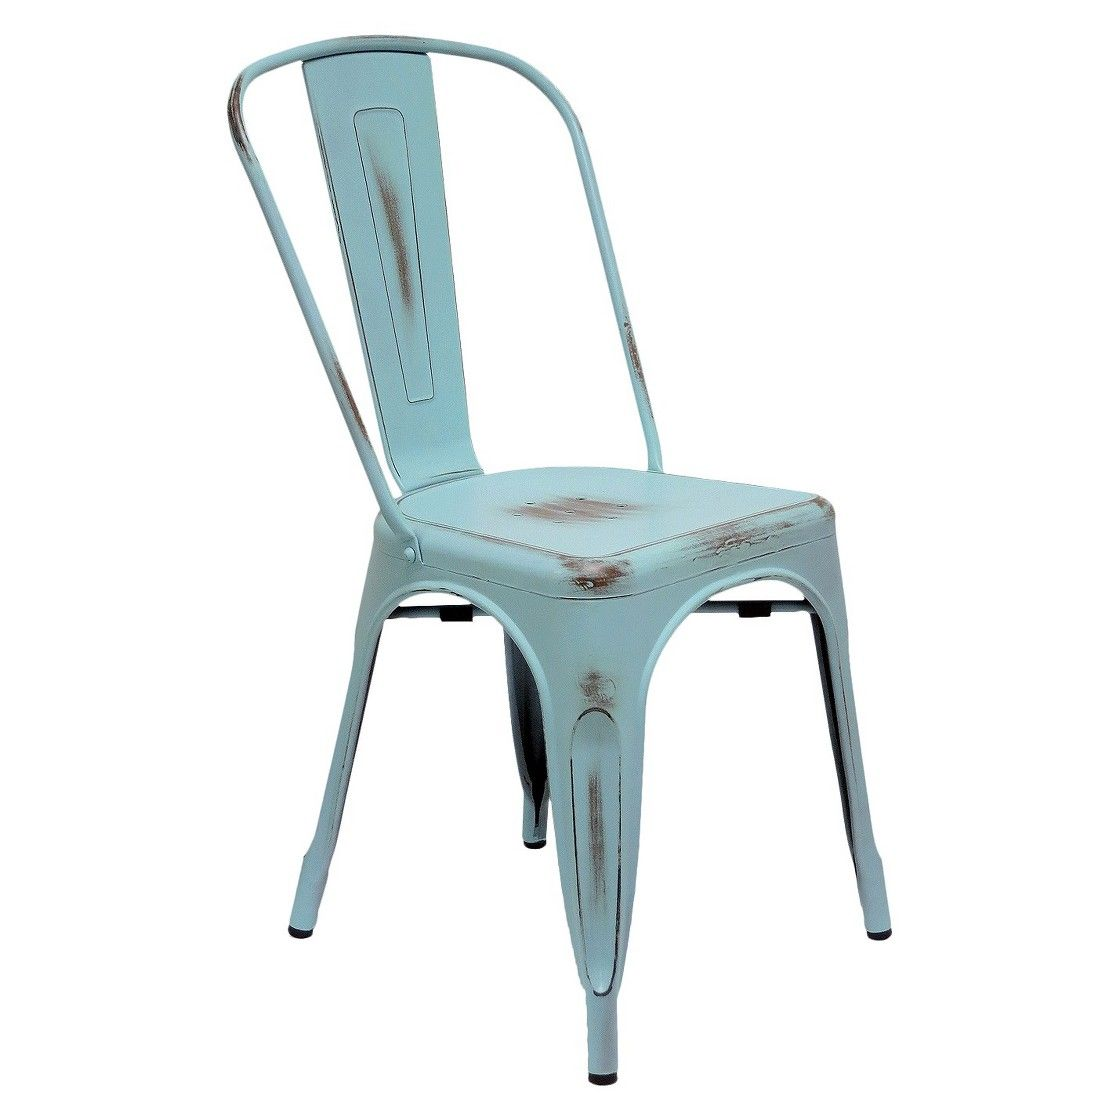 Aeon Garvin Galvanized Steel Chair Set Of For Our Desk Love These Chairs